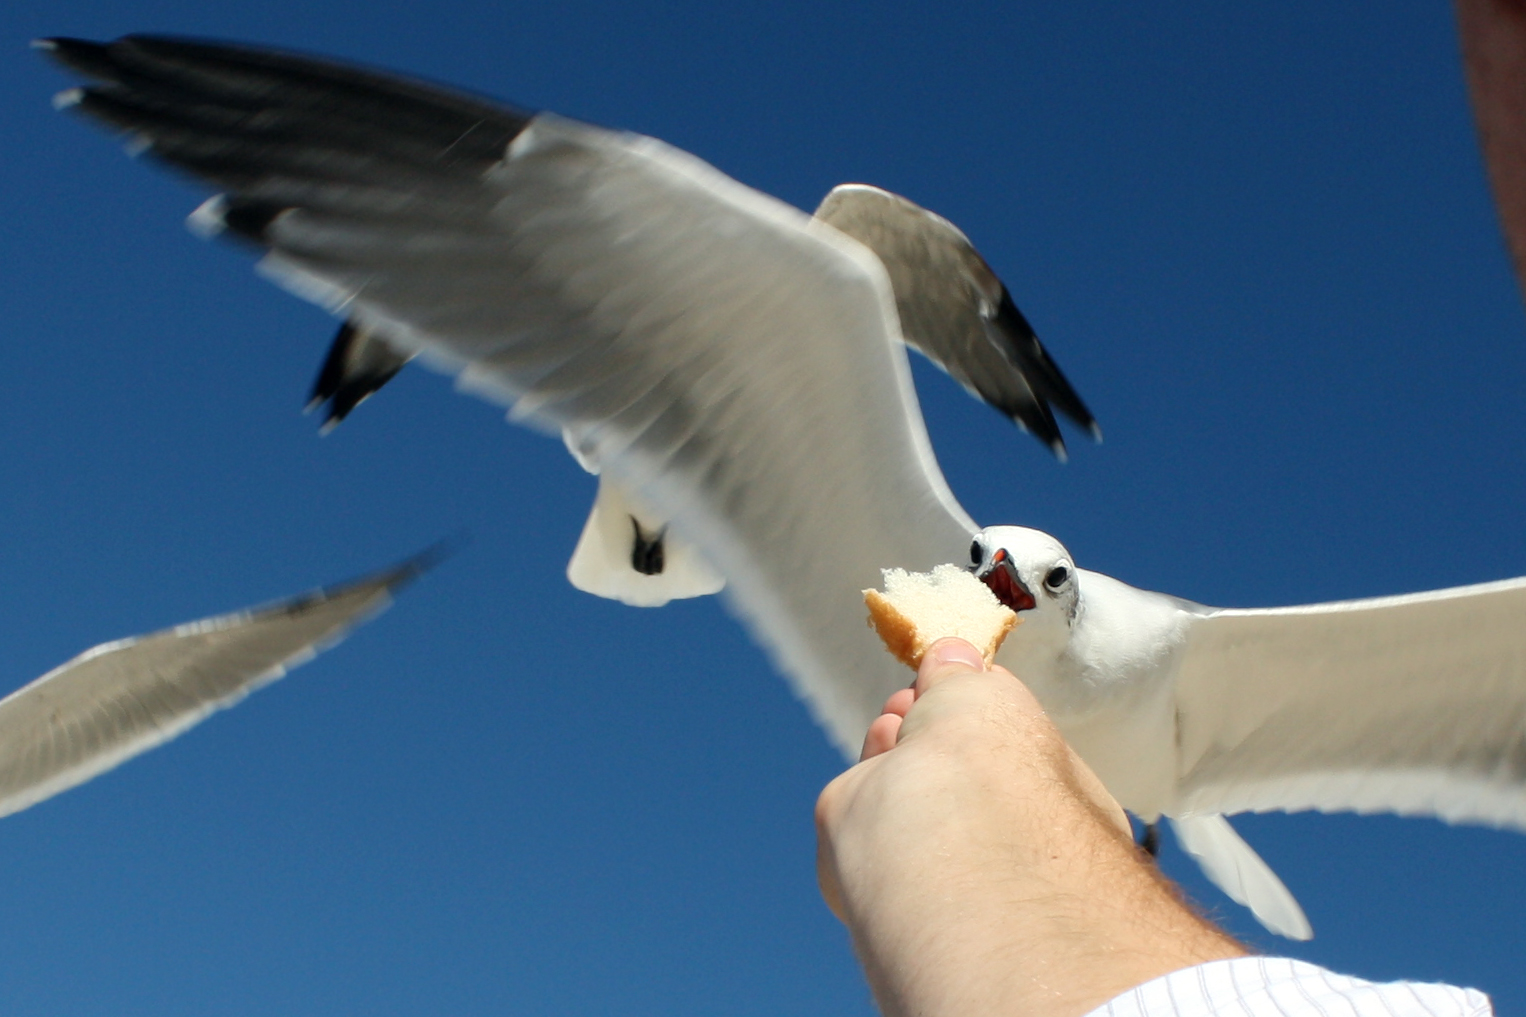 A seagull plucks bread out of a man's hand in Bethany Beach, Del.